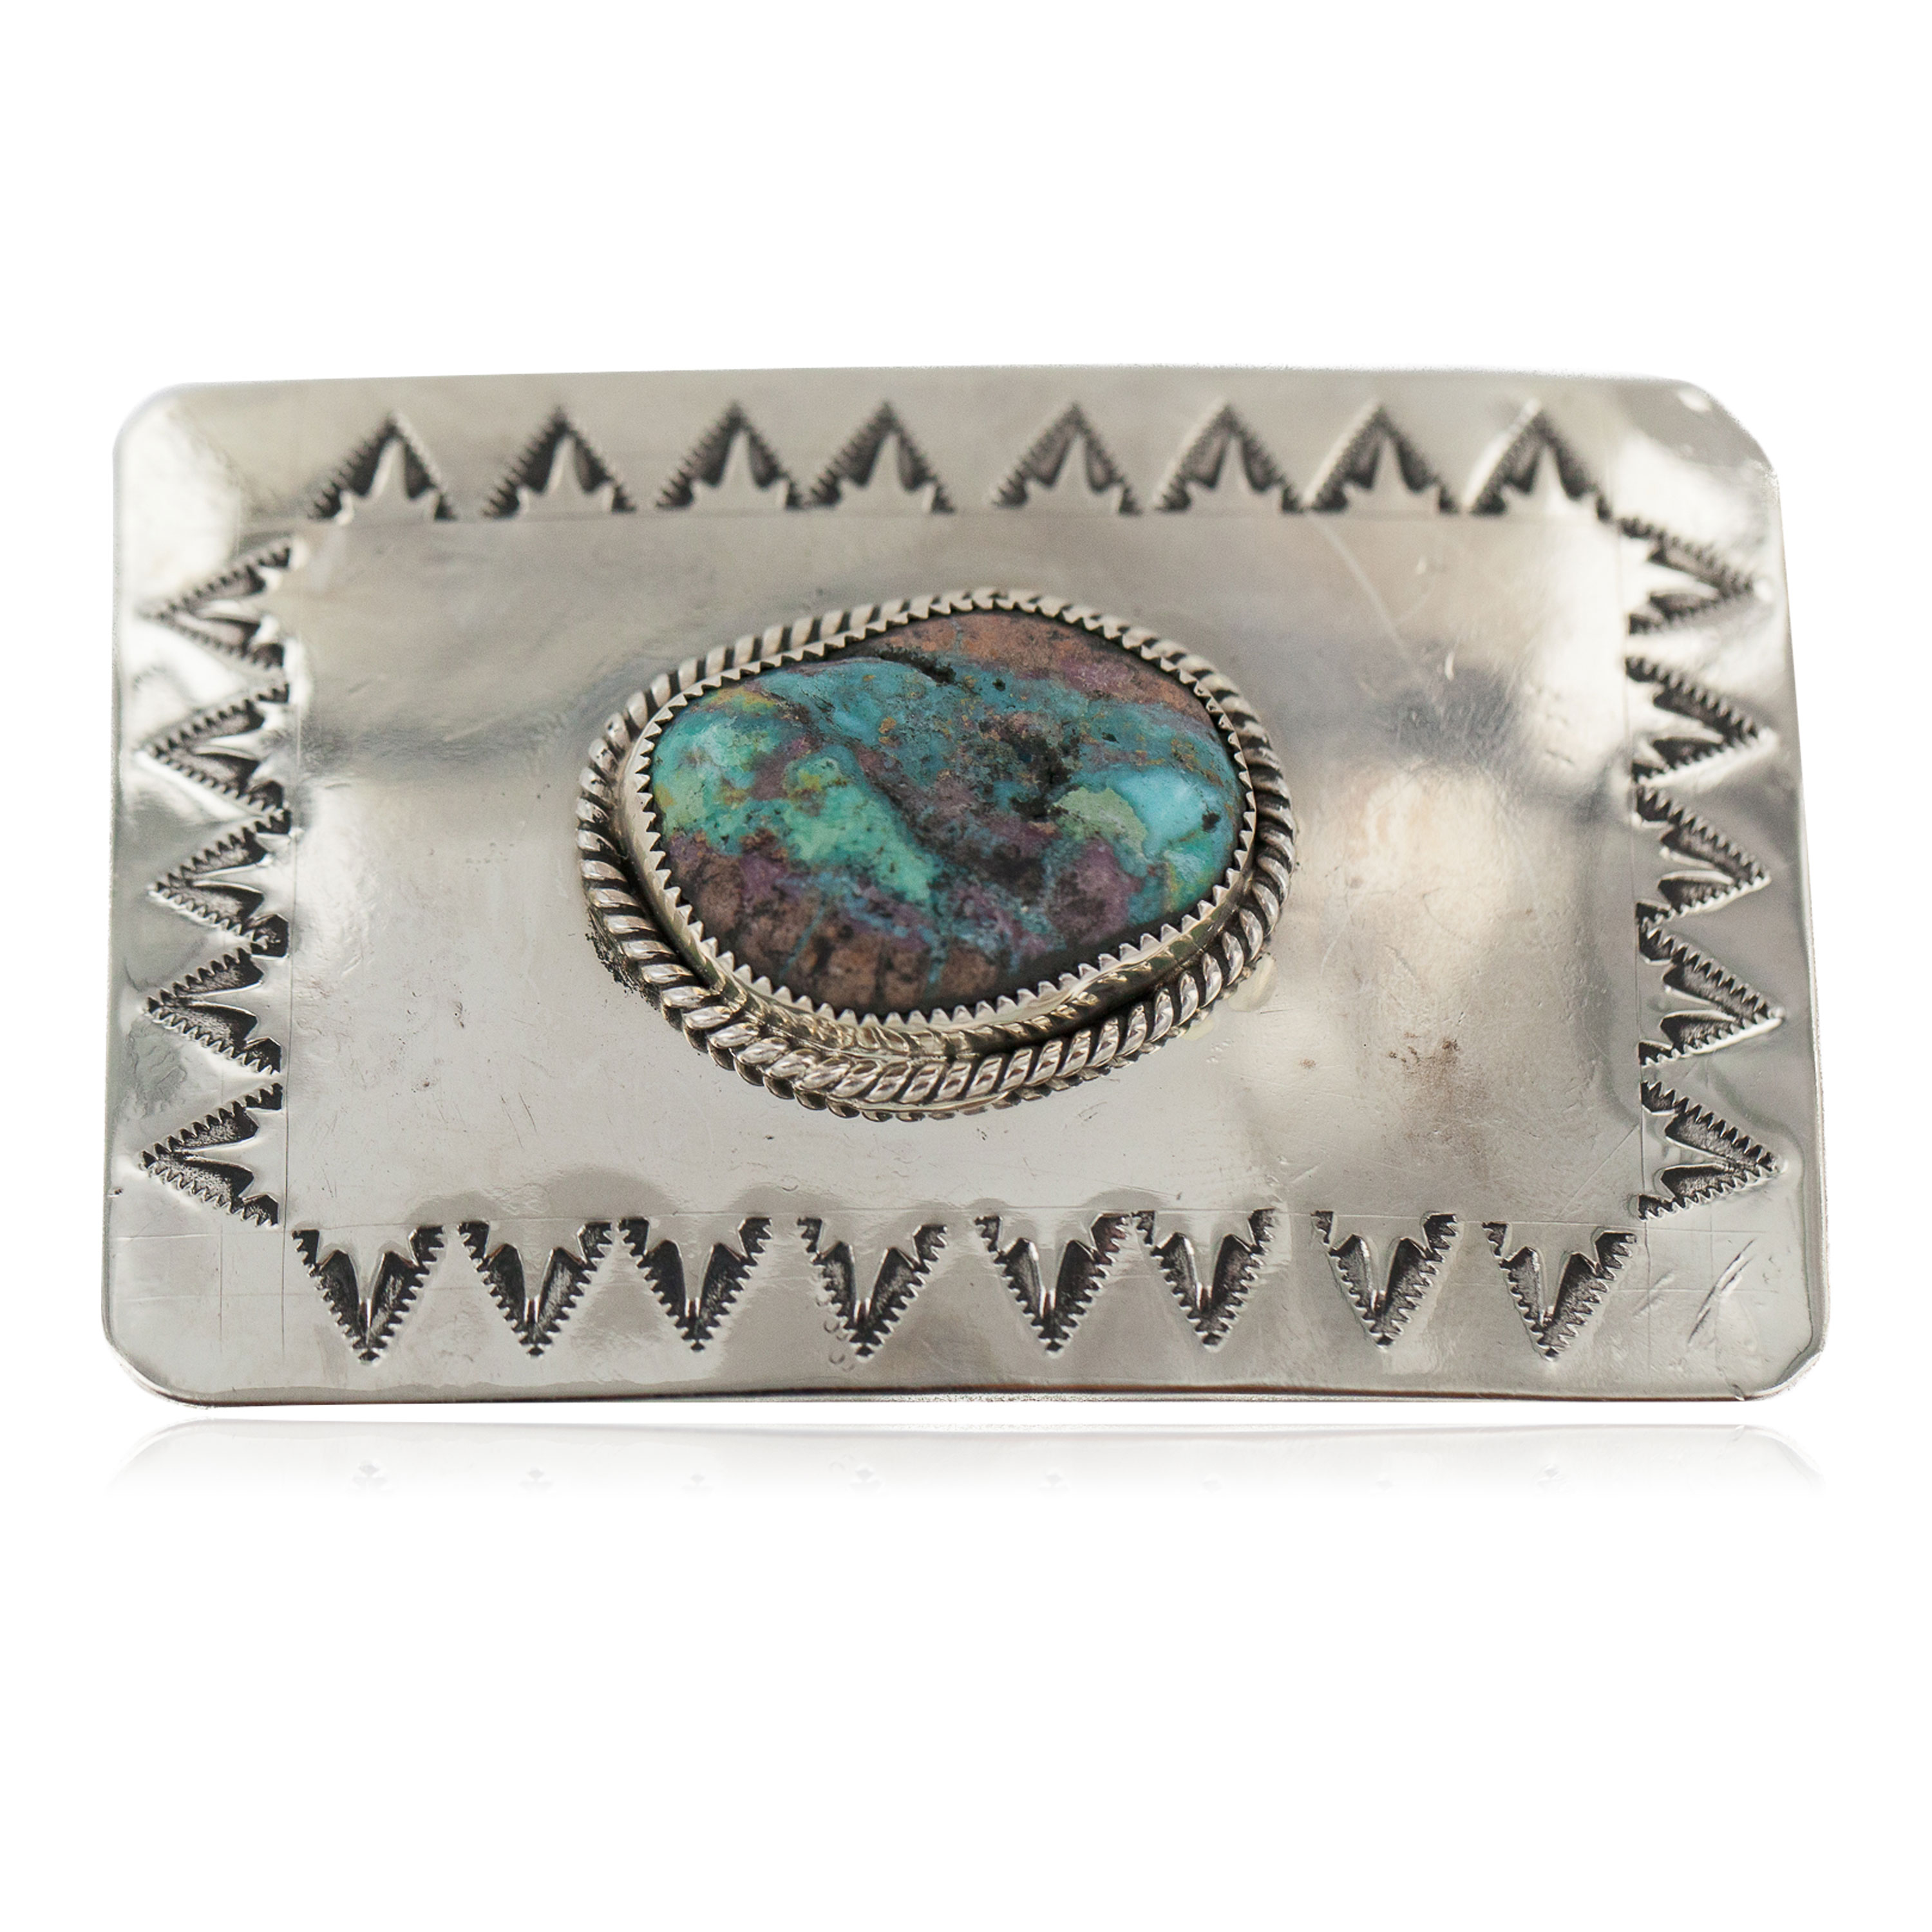 Certified Authentic Handmade Navajo Nickel Natural Turquoise Native American Buckle 1217-2 All Products NB160406085108 1217-2 (by LomaSiiva)